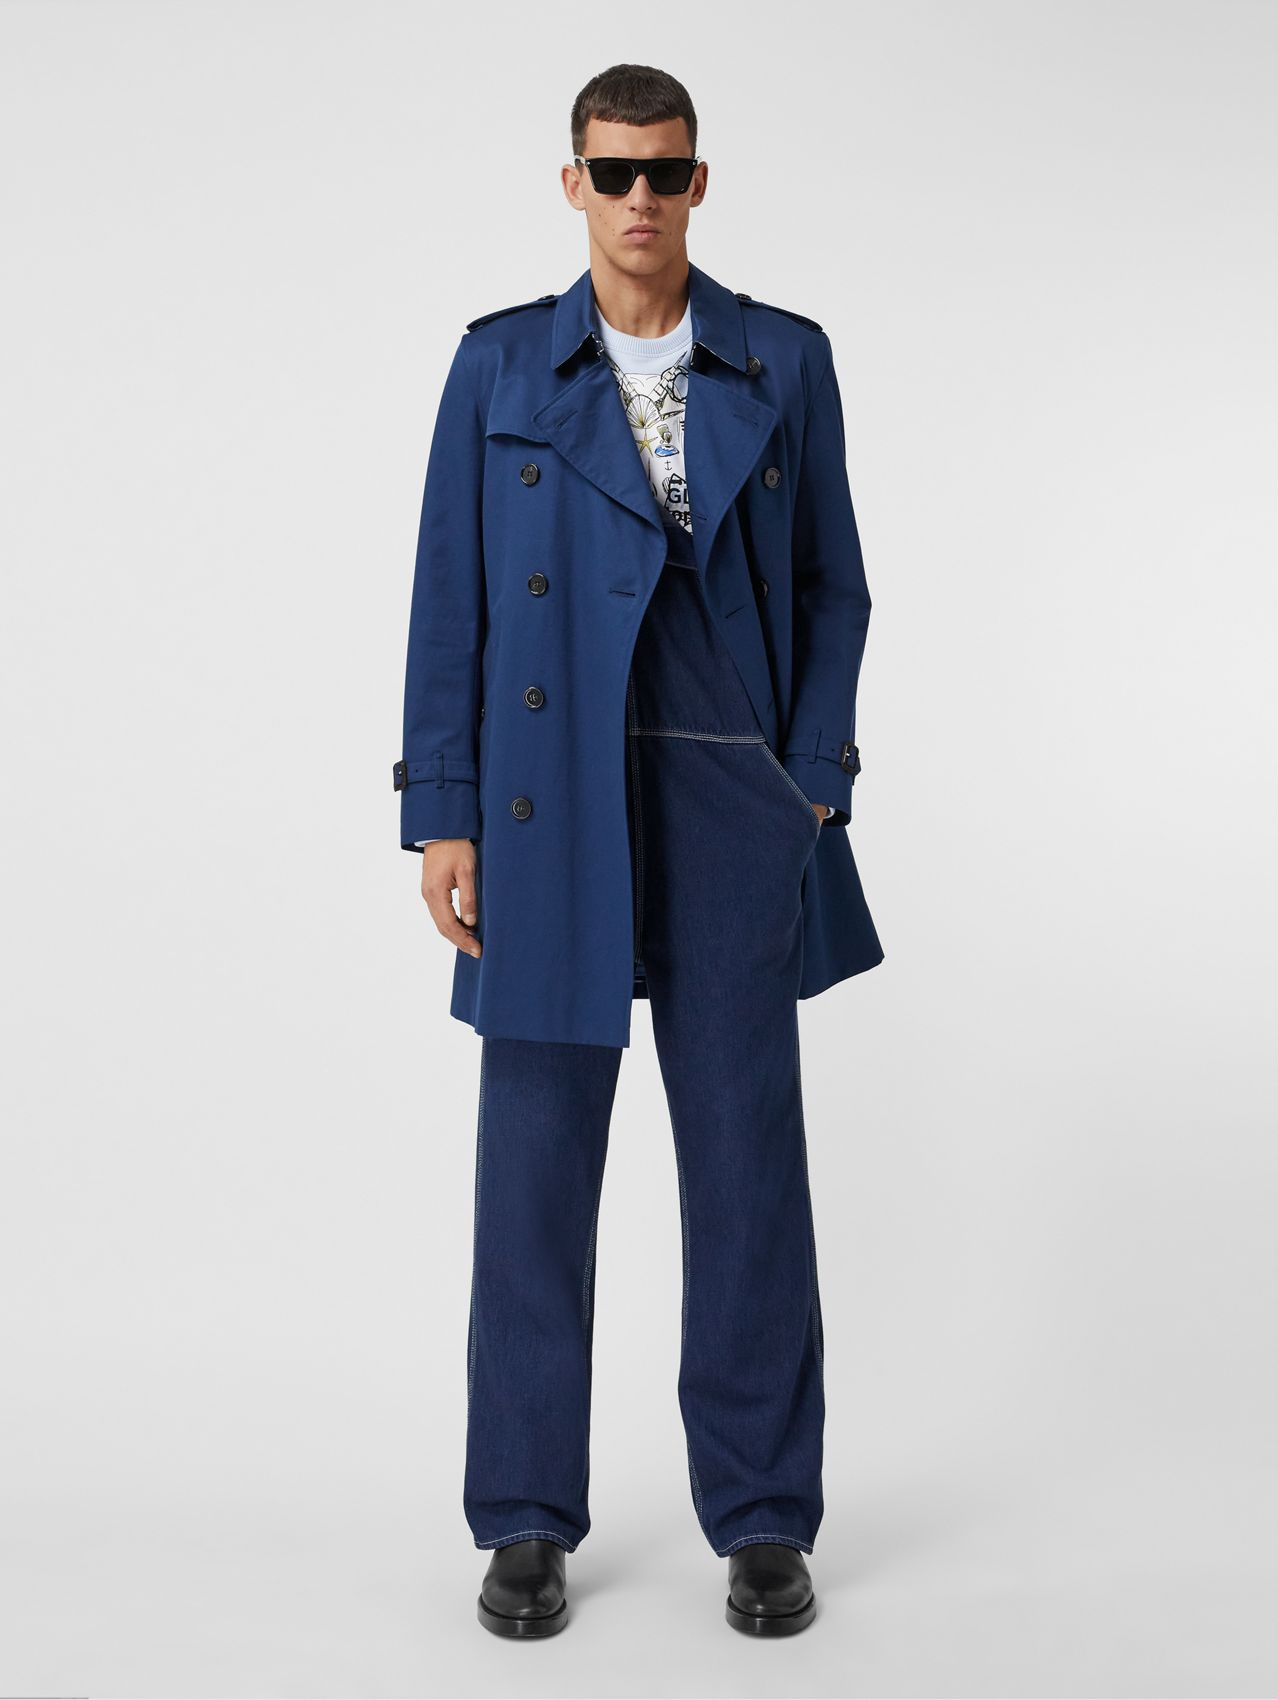 The Mid-length Kensington Trench Coat in Ink Blue